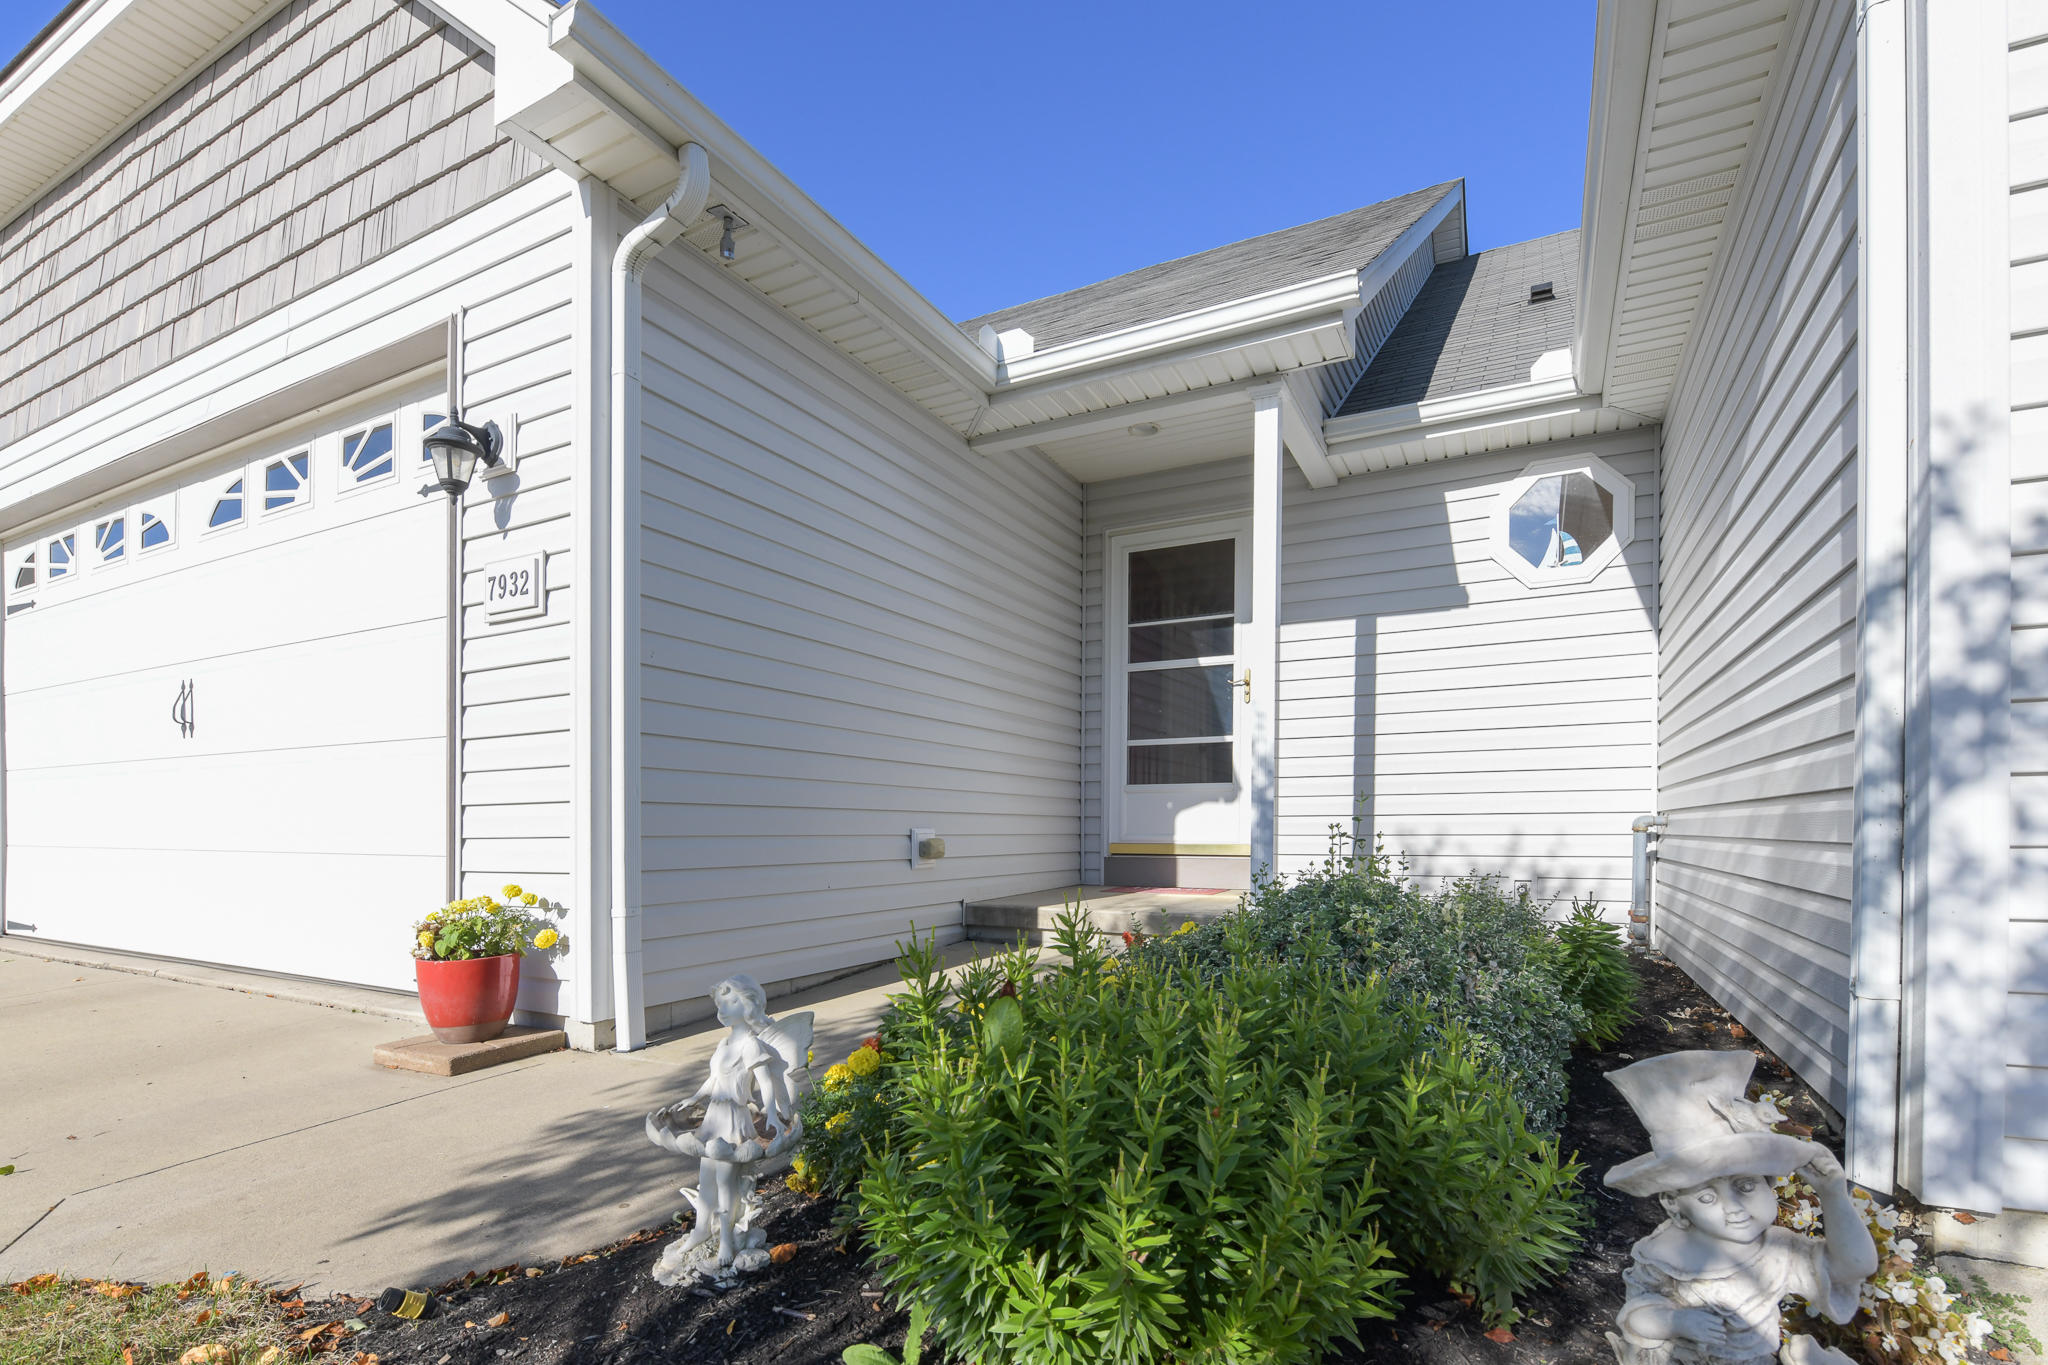 7932 Anne Bonney Ct #13-C Russells Point, OH